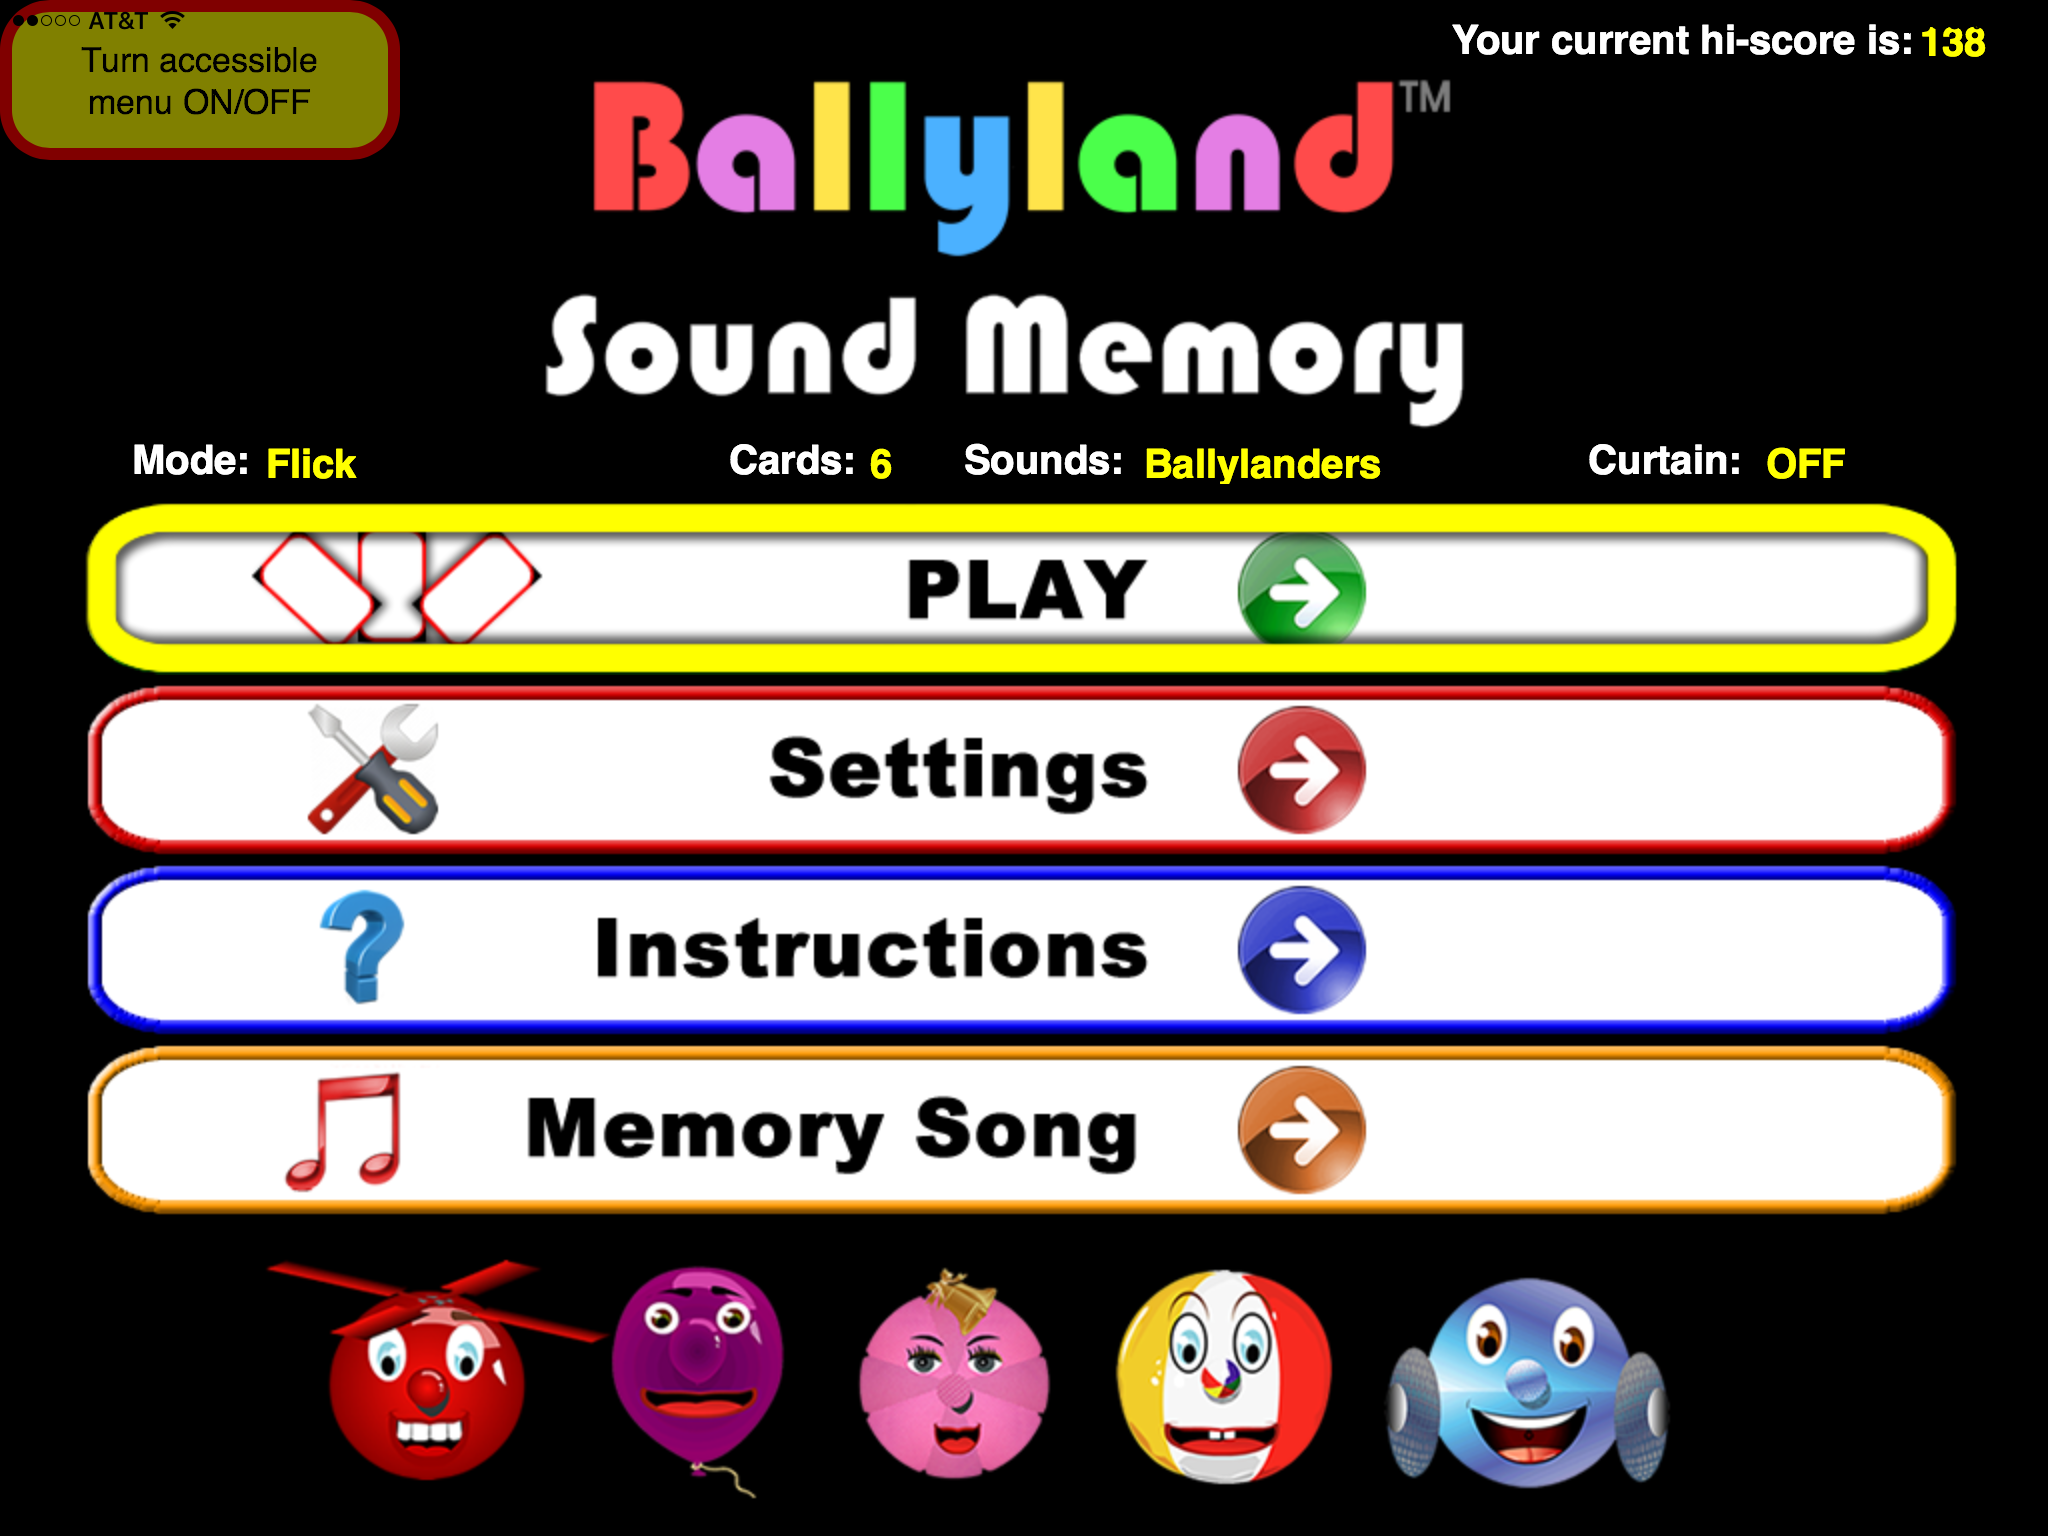 Ballyland Sound Memory Menu screen: Play, Settings, Instructions, Memory Song menus.